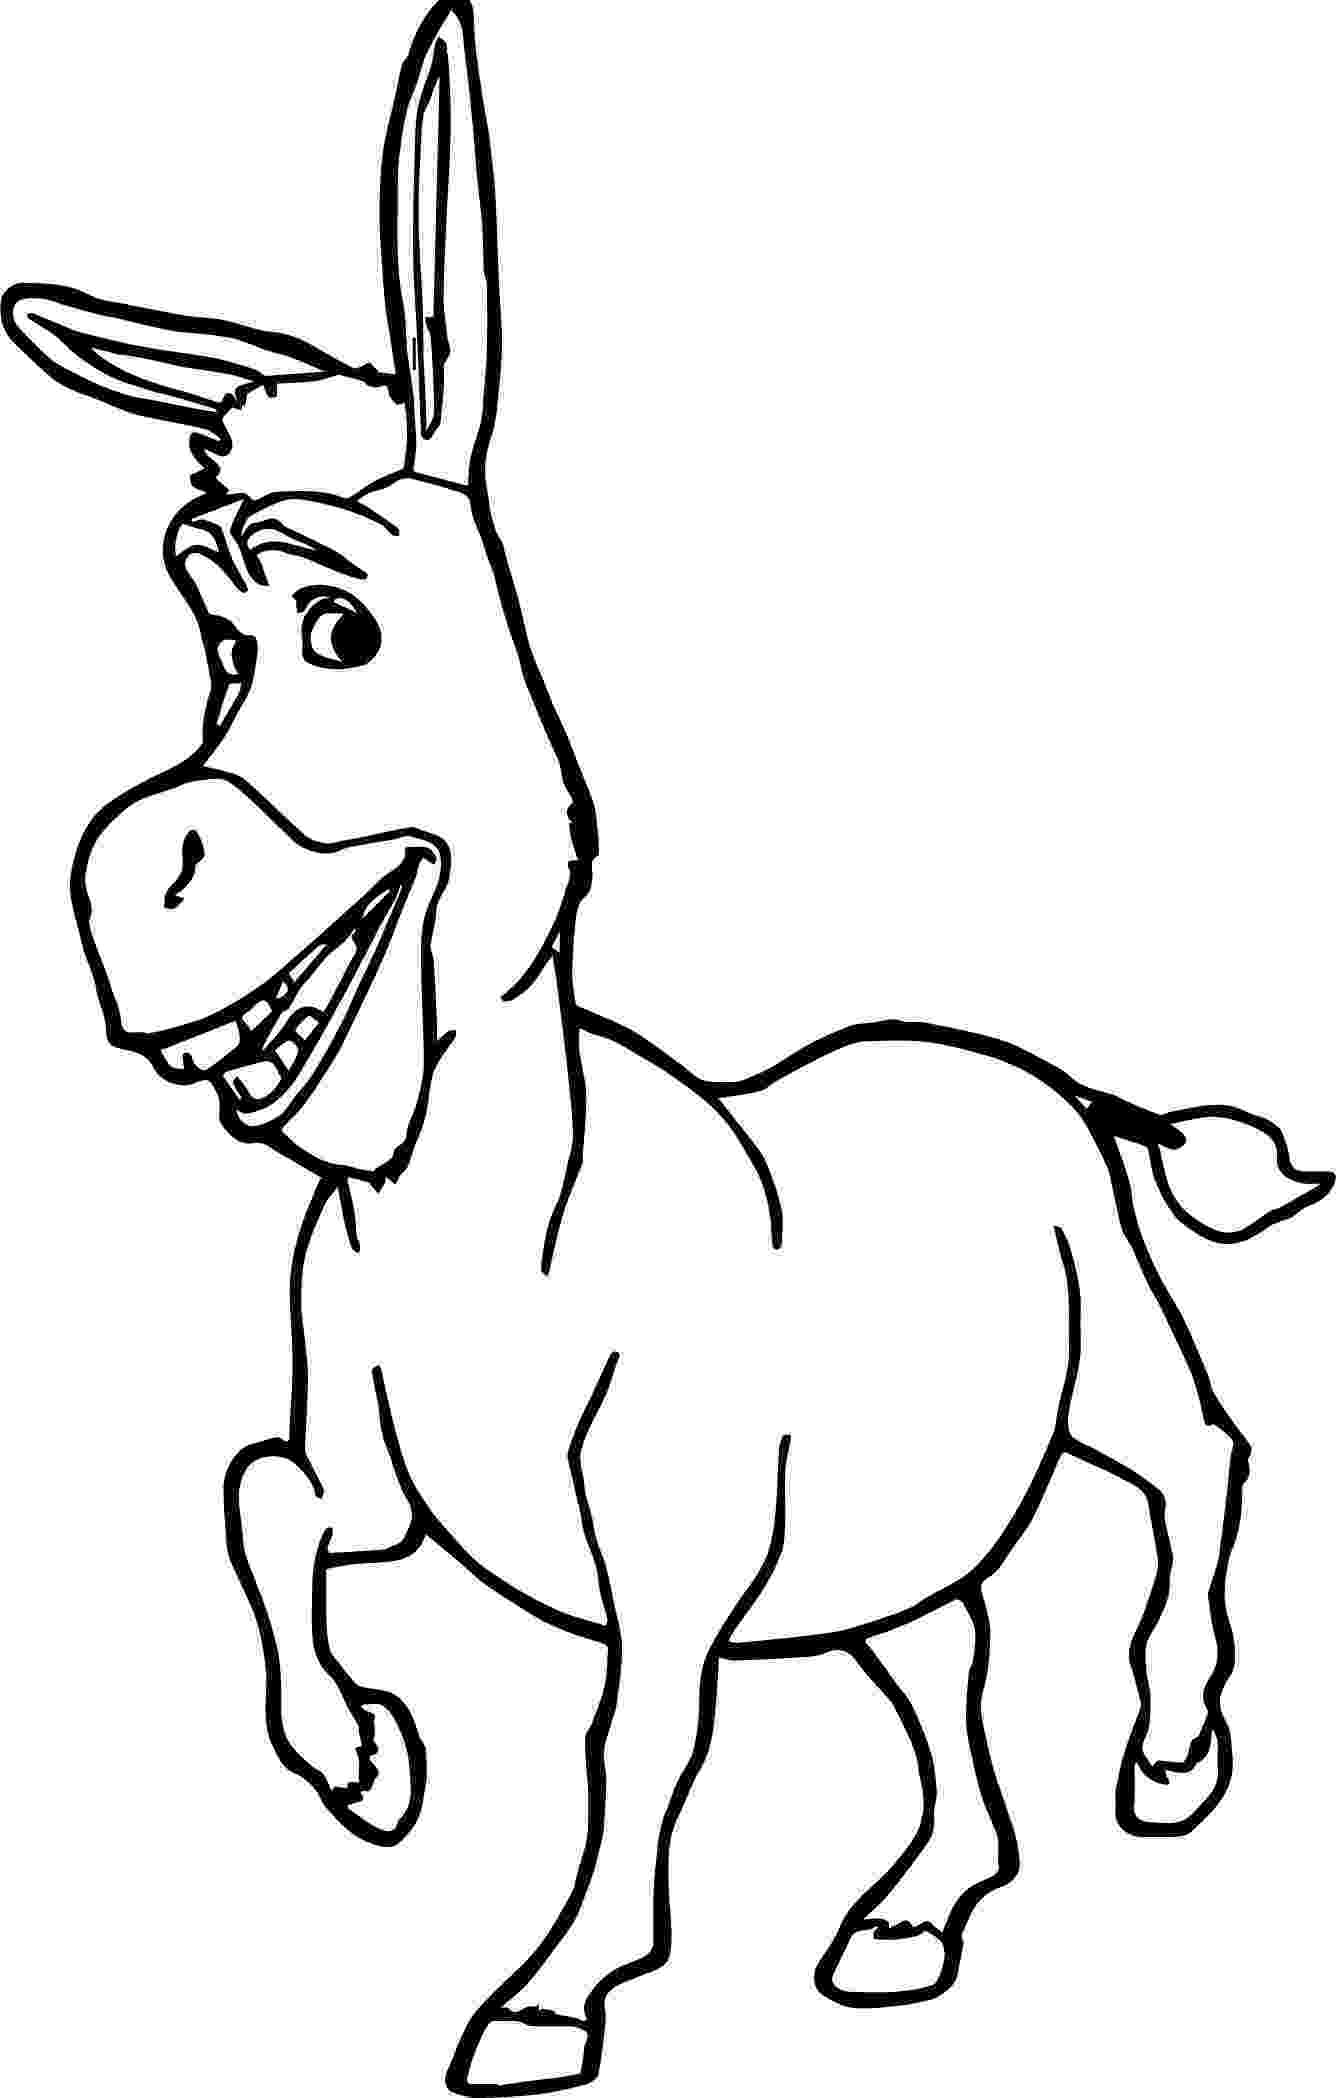 shrek and donkey coloring pages free printable shrek coloring pages for kids coloring and shrek donkey pages